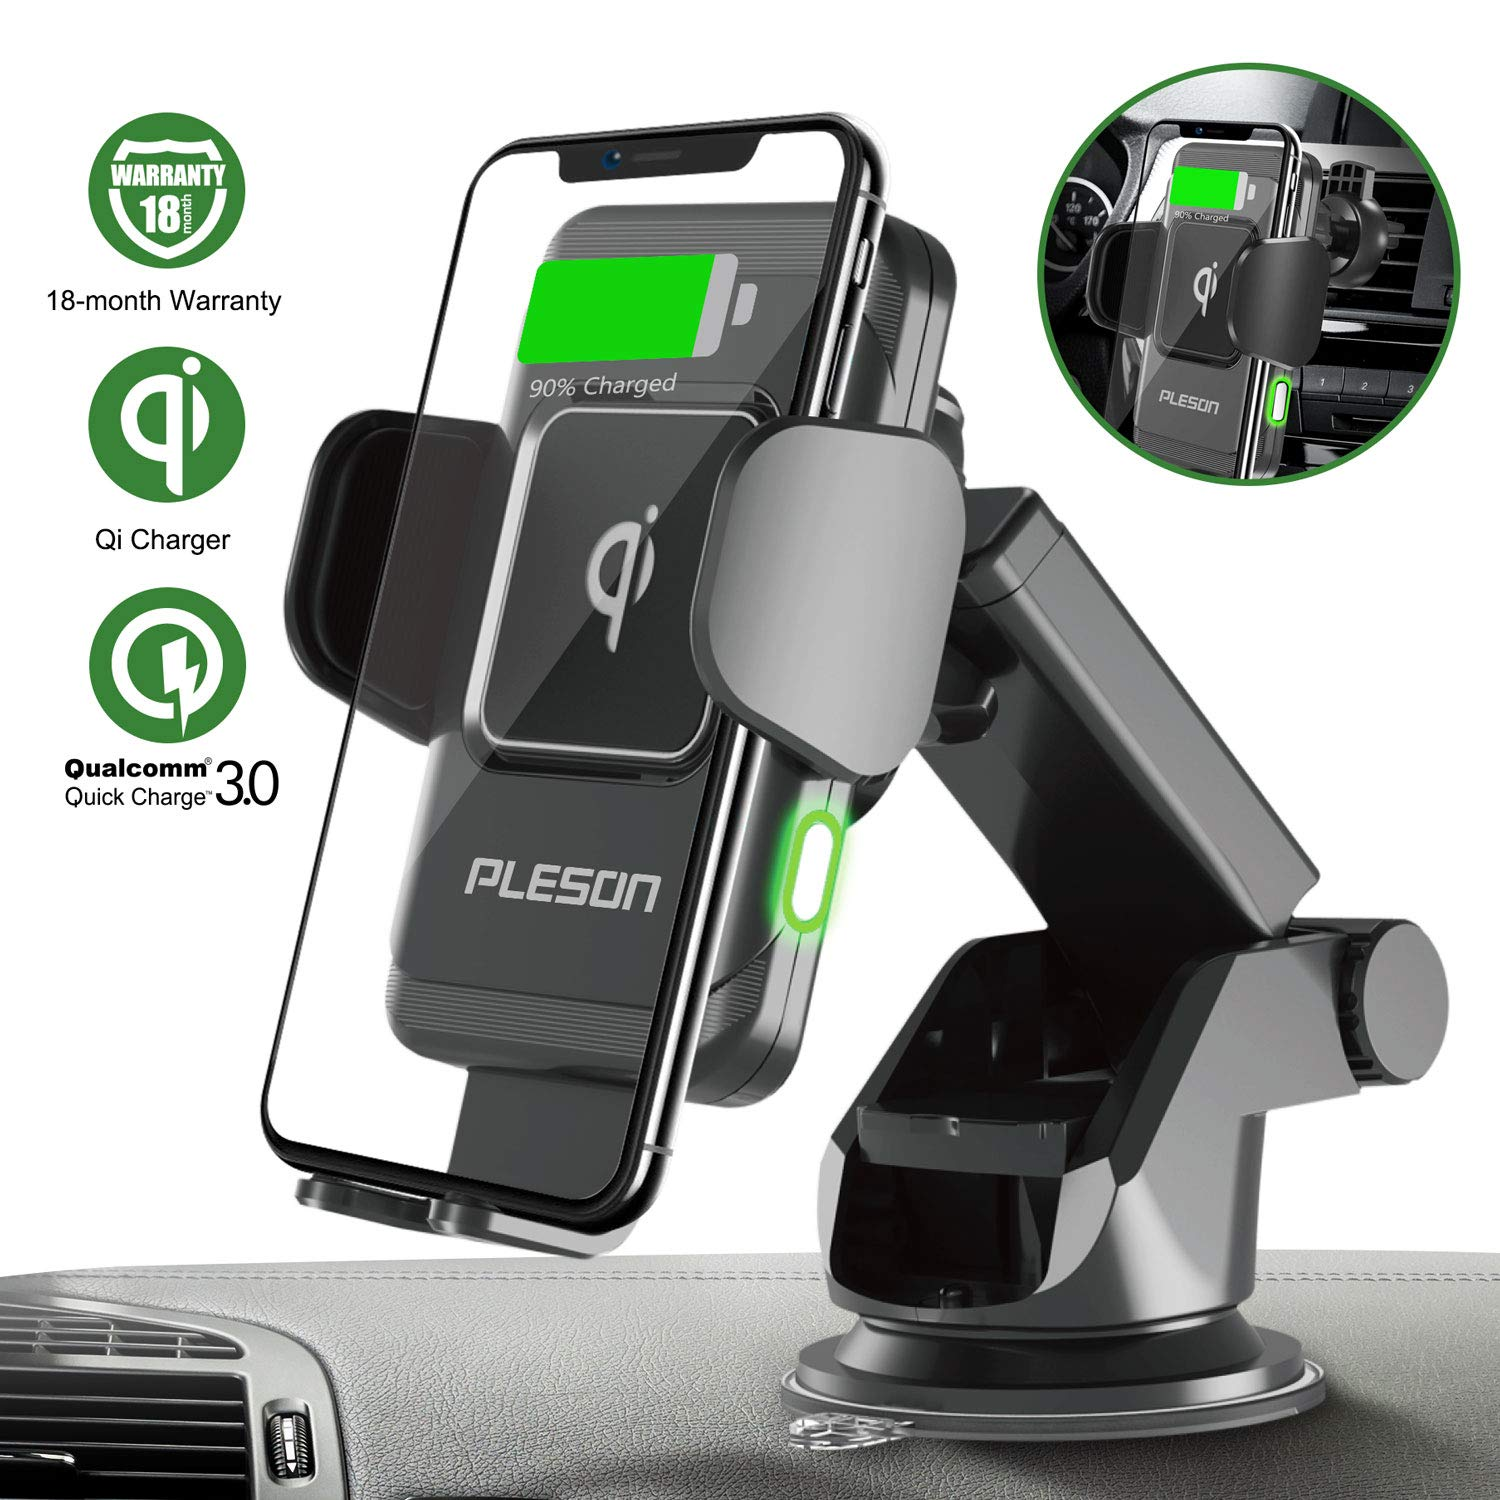 PLESON 10W/7.5W Wireless Car Charger Mount, Auto-Clamp Qi Fast Charging Windshield Dashboard & Vent Car Phone Holder for Galaxy S10 Plus/Note 10+ 5G/S9+/S8+, iPhone 11/11 Pro Max/XR/Xs Max/8+/X - 2019 by PLESON